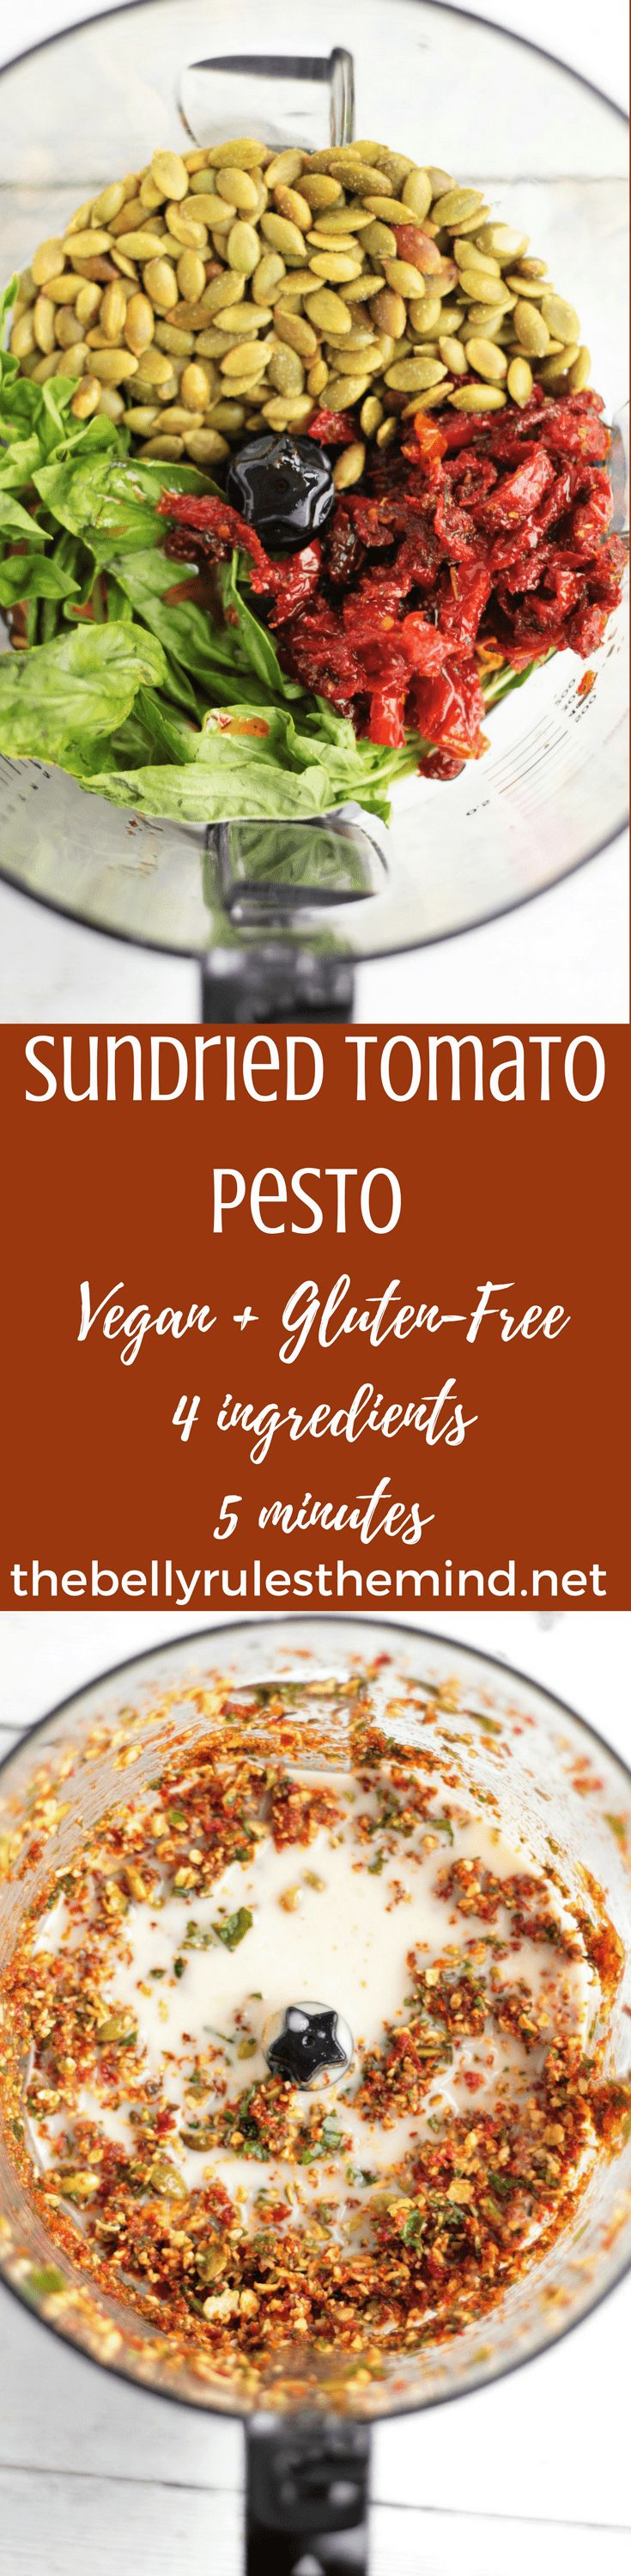 OurVegan Sundried Tomato Pesto is just what you need for a quick dip, spread or drizzle. 4 simple ingredients. 10 minutes. Gluten-Free.#SoDelicious #ad#SDOrganicAlmondmilk |@bellyrulesdmind #vegan #glutenfree #5 ingredients #10minutes #dip #spread #snack #recipe